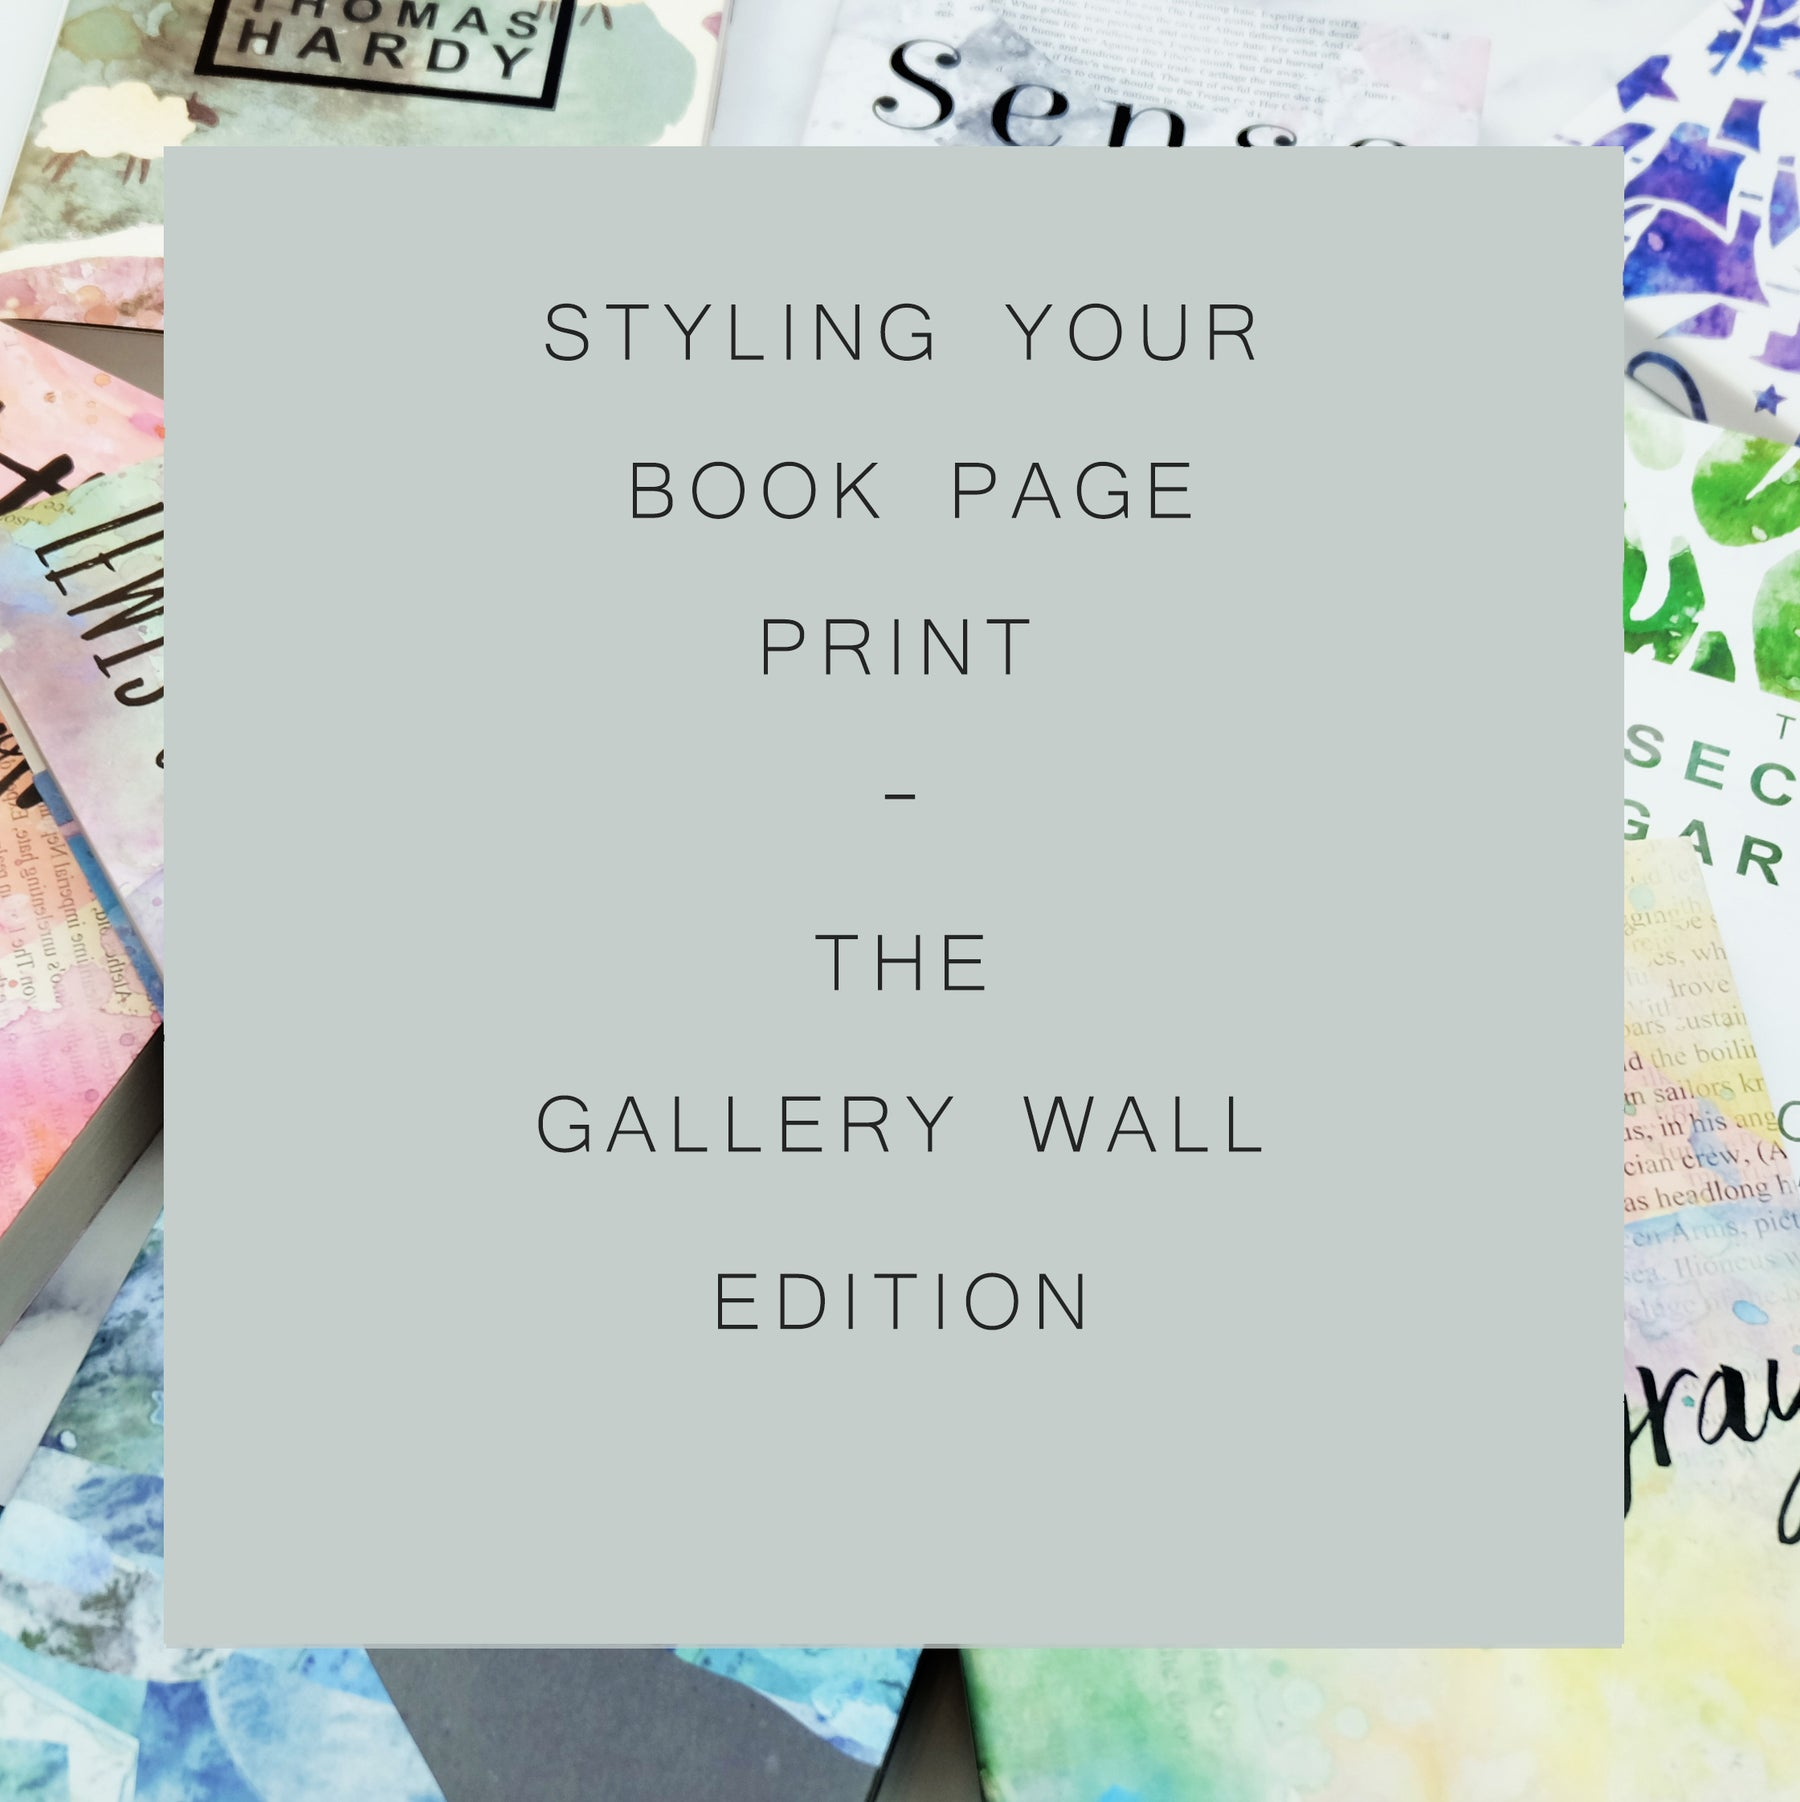 Styling Your Book Page Print - The Gallery Wall Edition